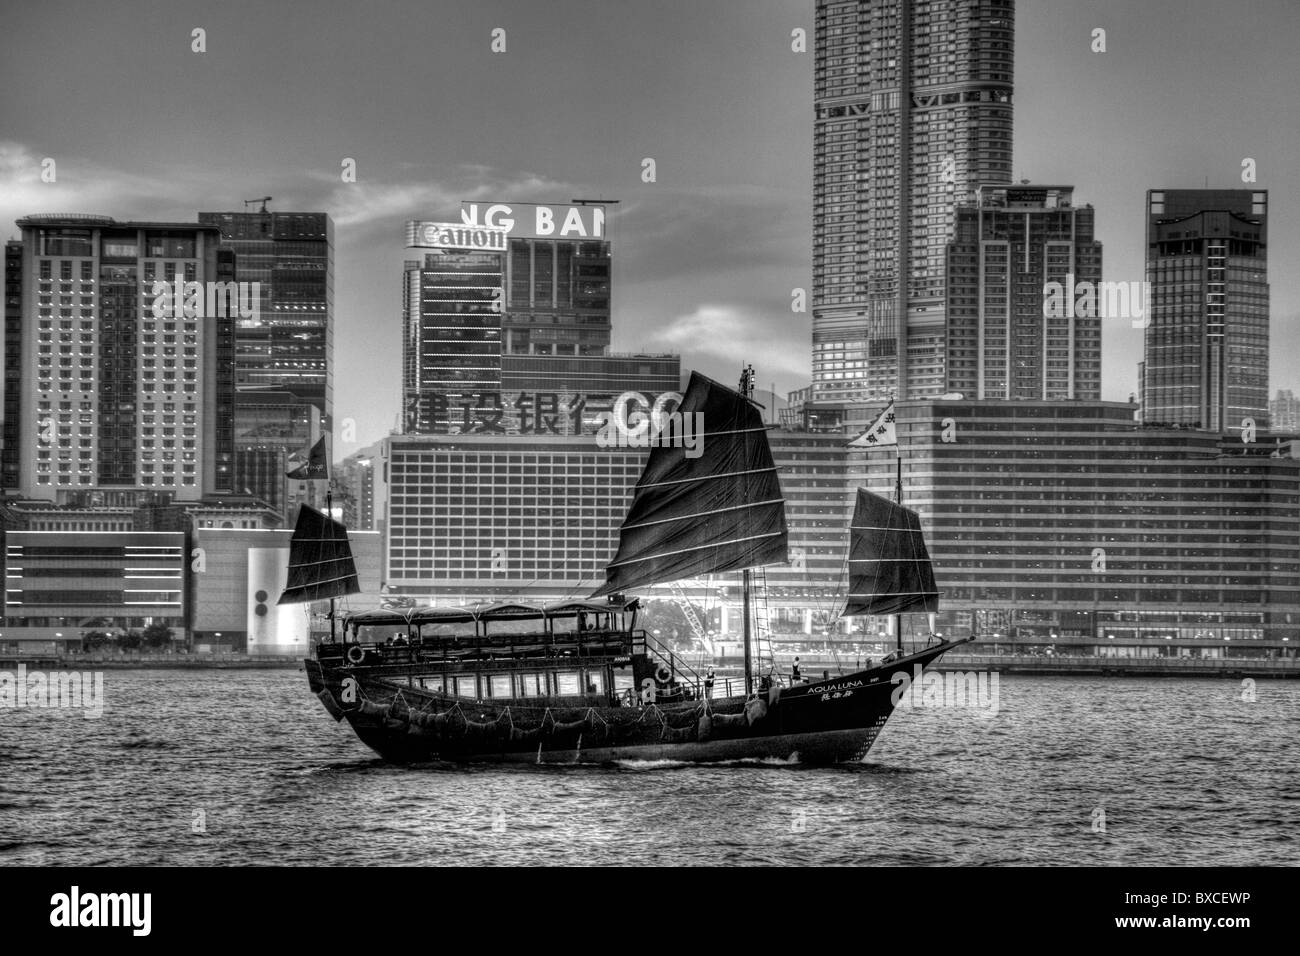 Hong Kong Junk Trips on Victoria Harbour, Harbor, with Kowloon in the background bat wing sails iconic sight - Stock Image